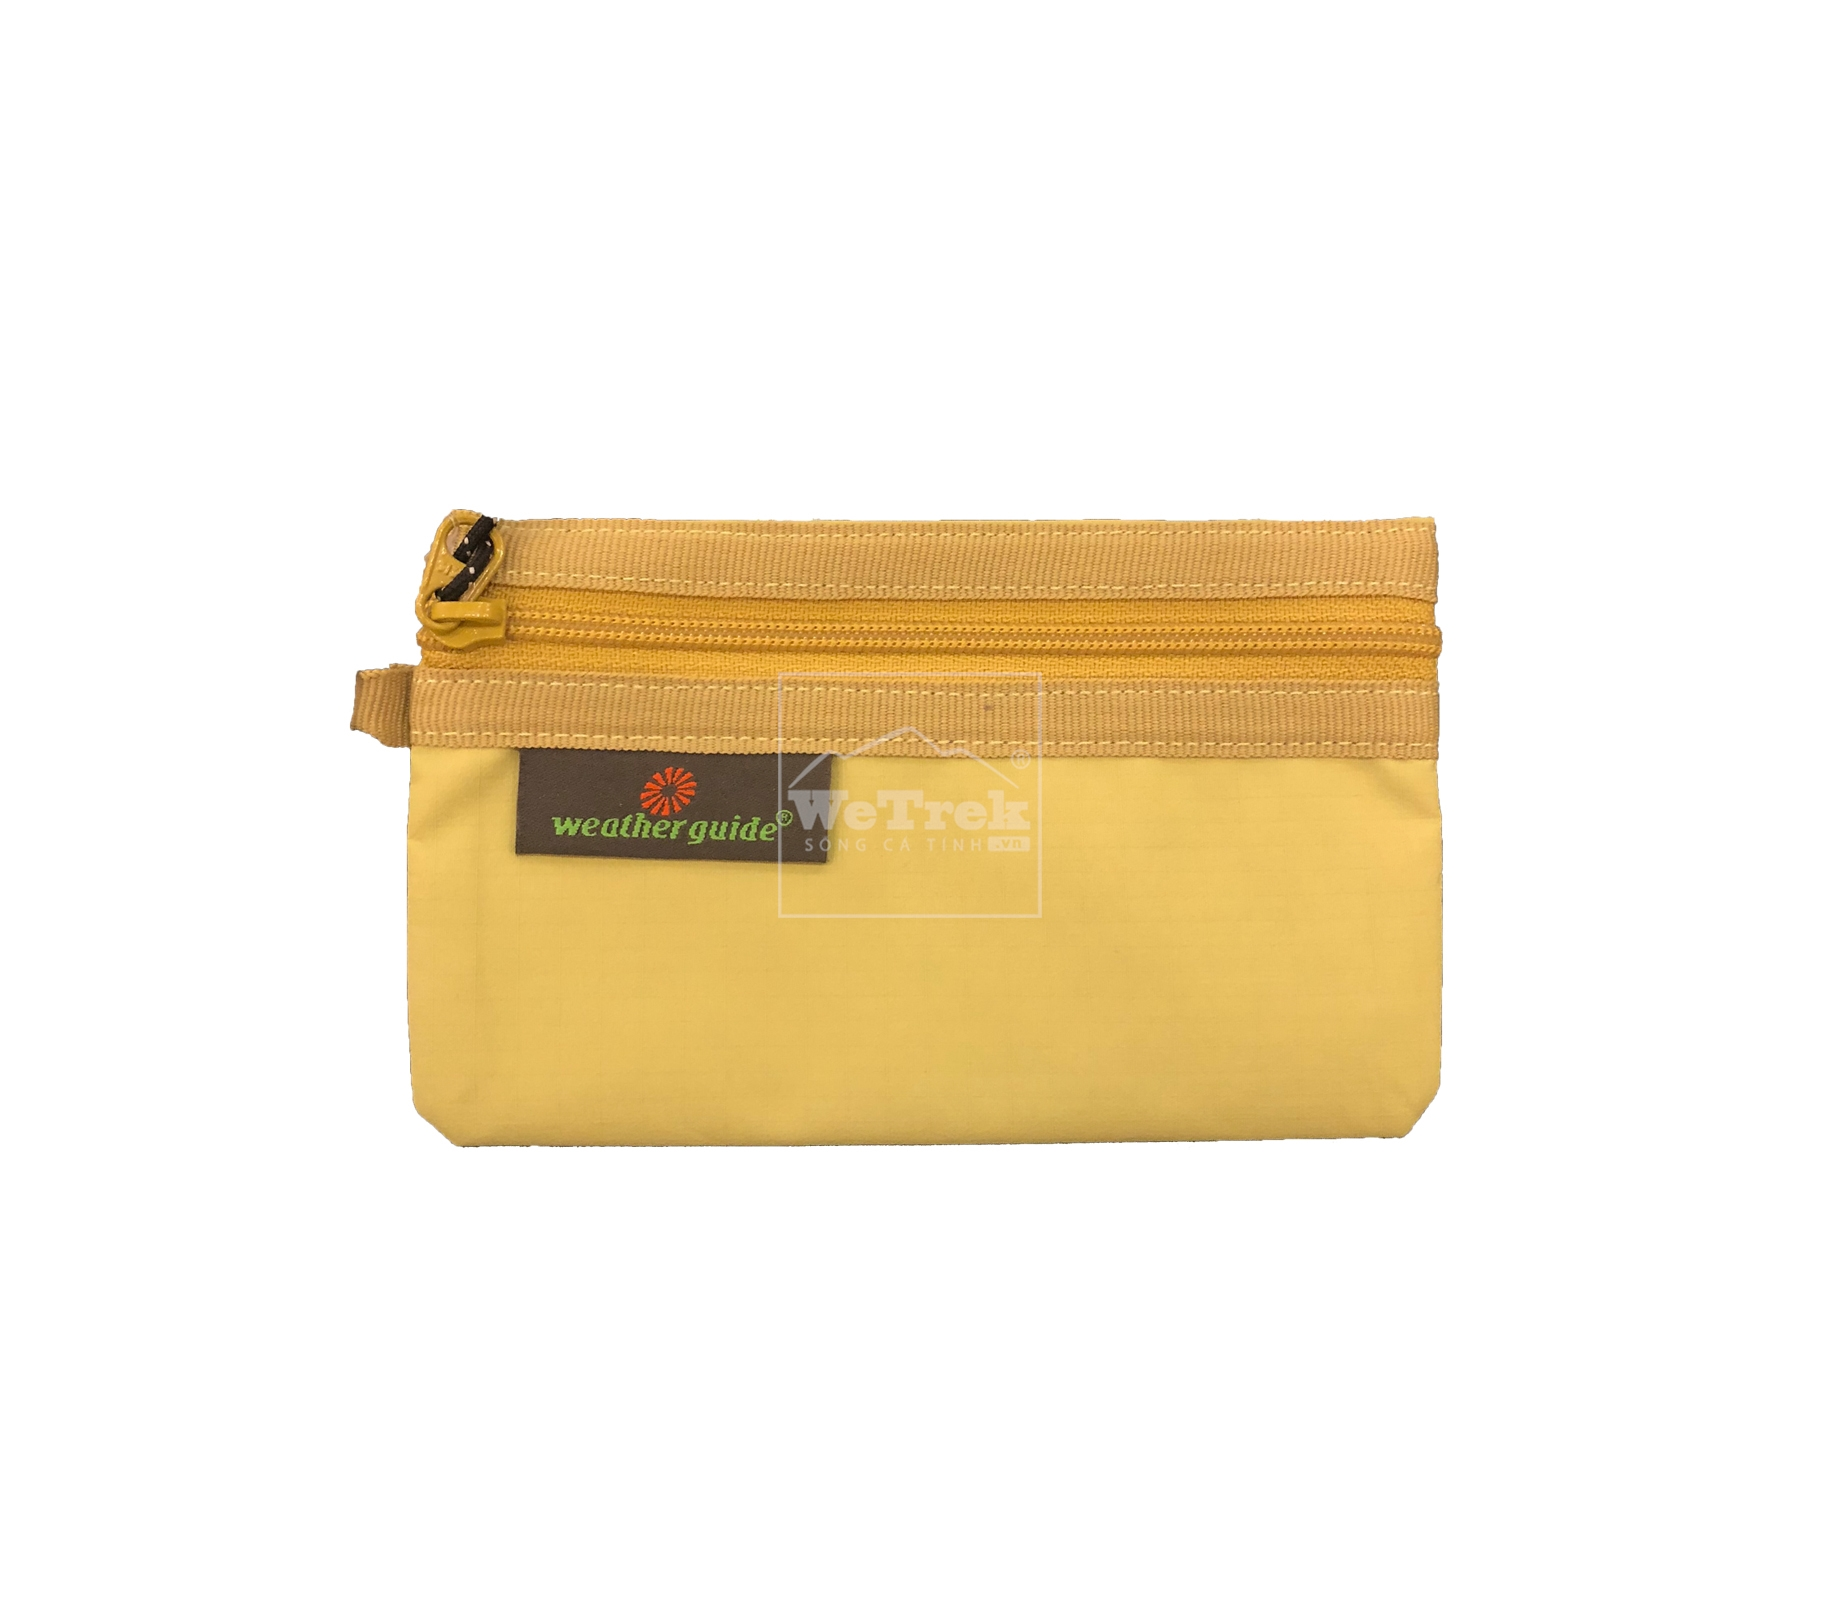 4-vi-tien-Weather-Guide-Mini-Wallet-CA-0101-8309-wetrekvn.jpg